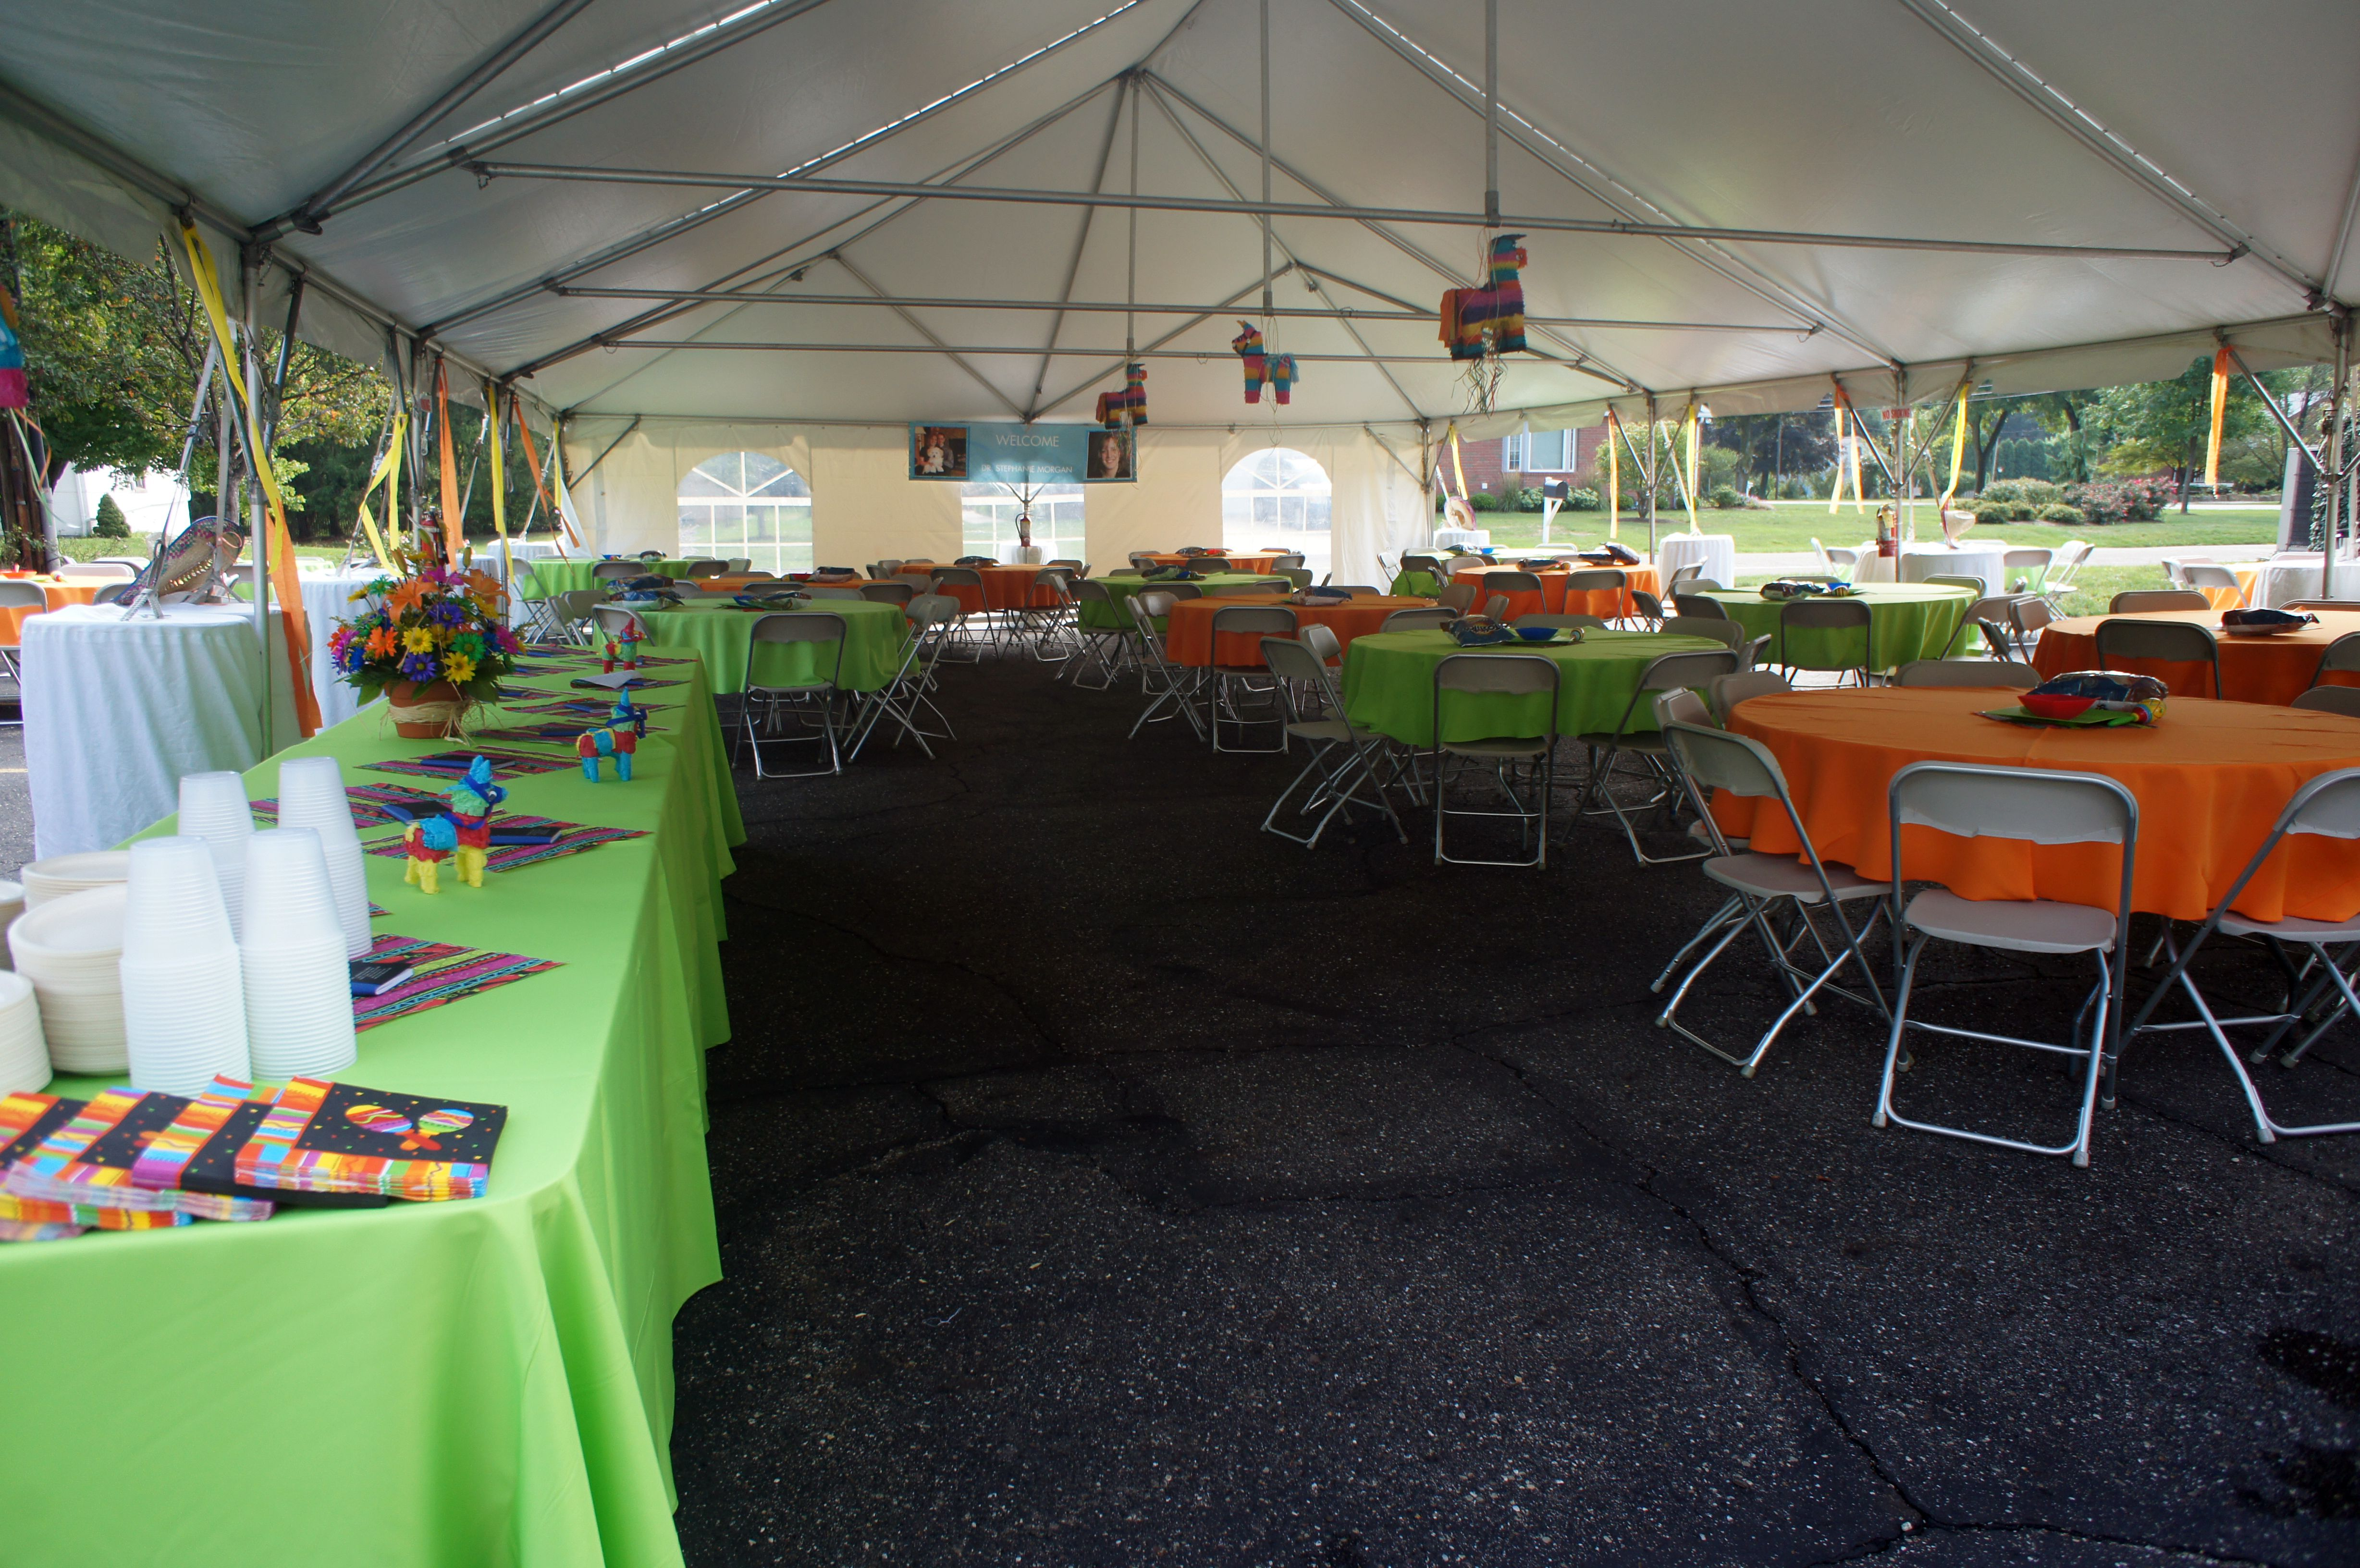 Fiesta was the theme for this outdoor summer event with